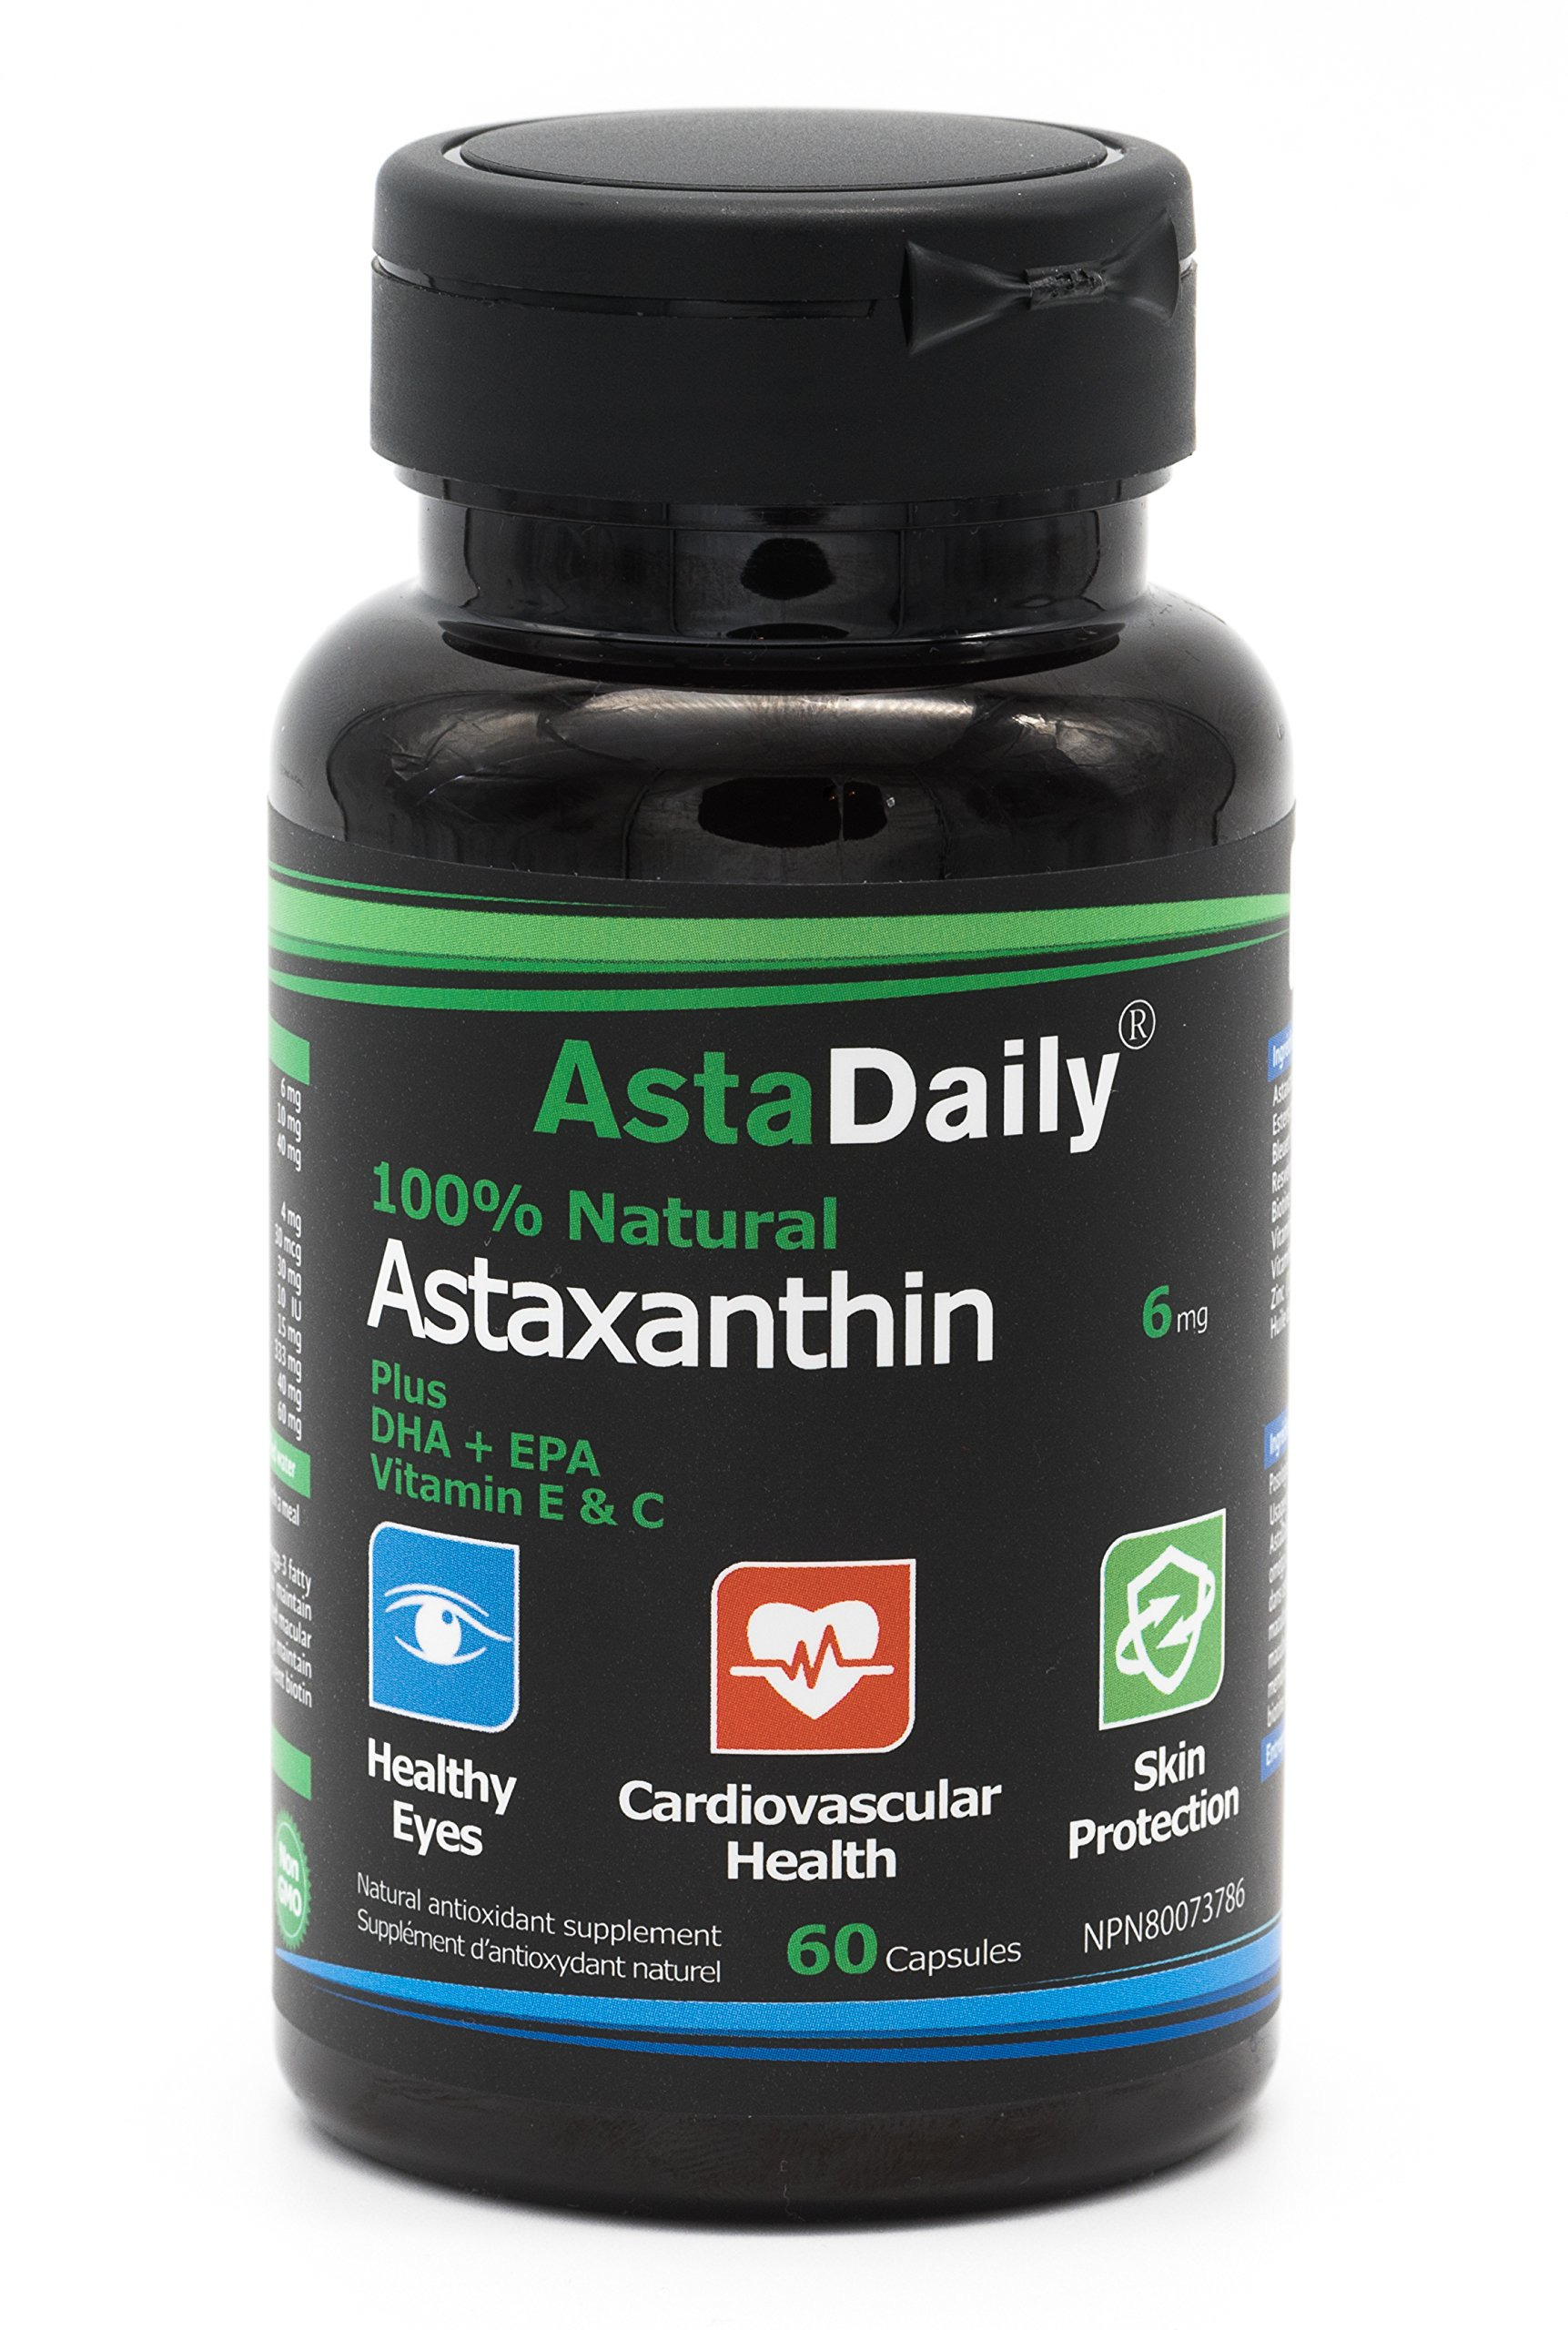 AstaDaily Premium softgel with Astaxanthin (12 mg Daily Dosage), Lutein, and Omega-3 Fatty acids